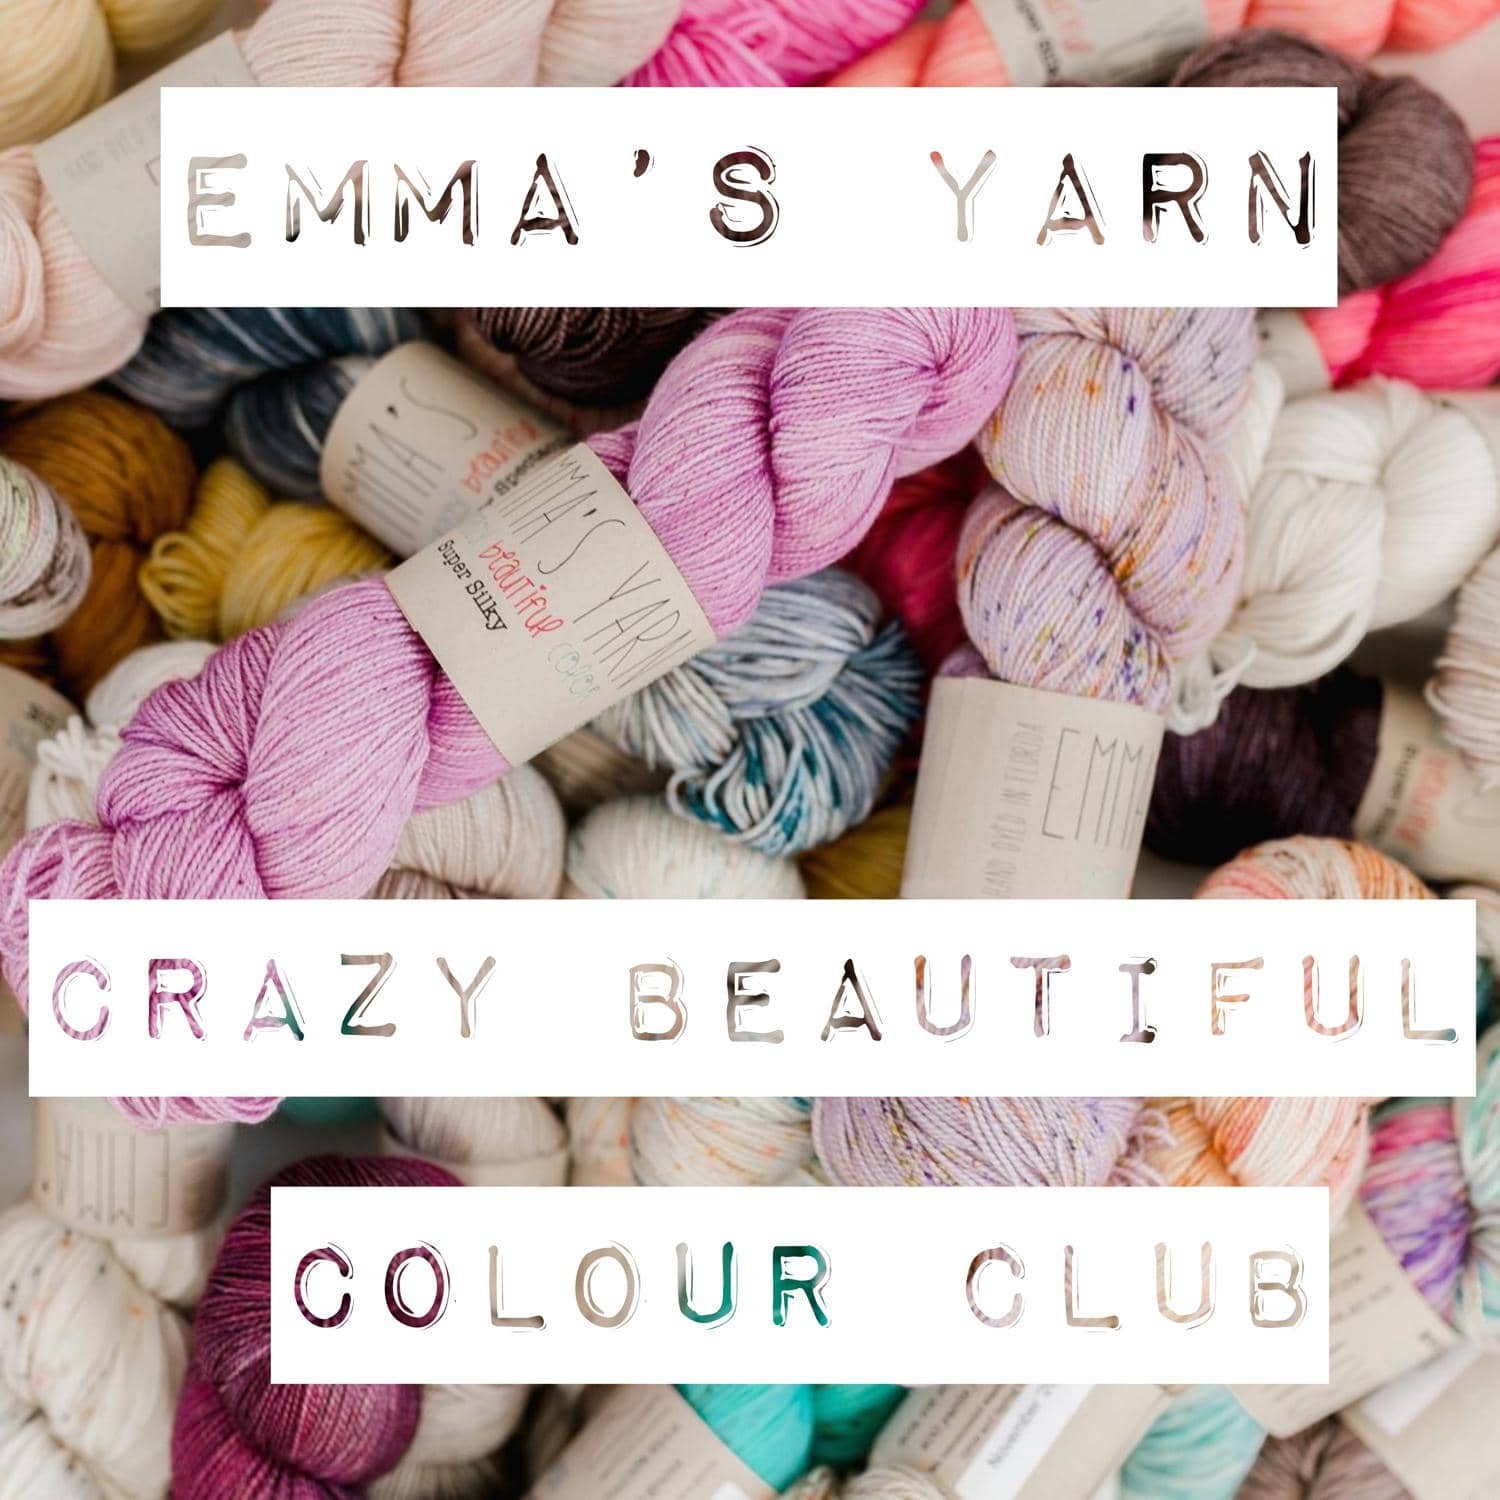 Emma's Yarn Crazy Beautiful Colour Club